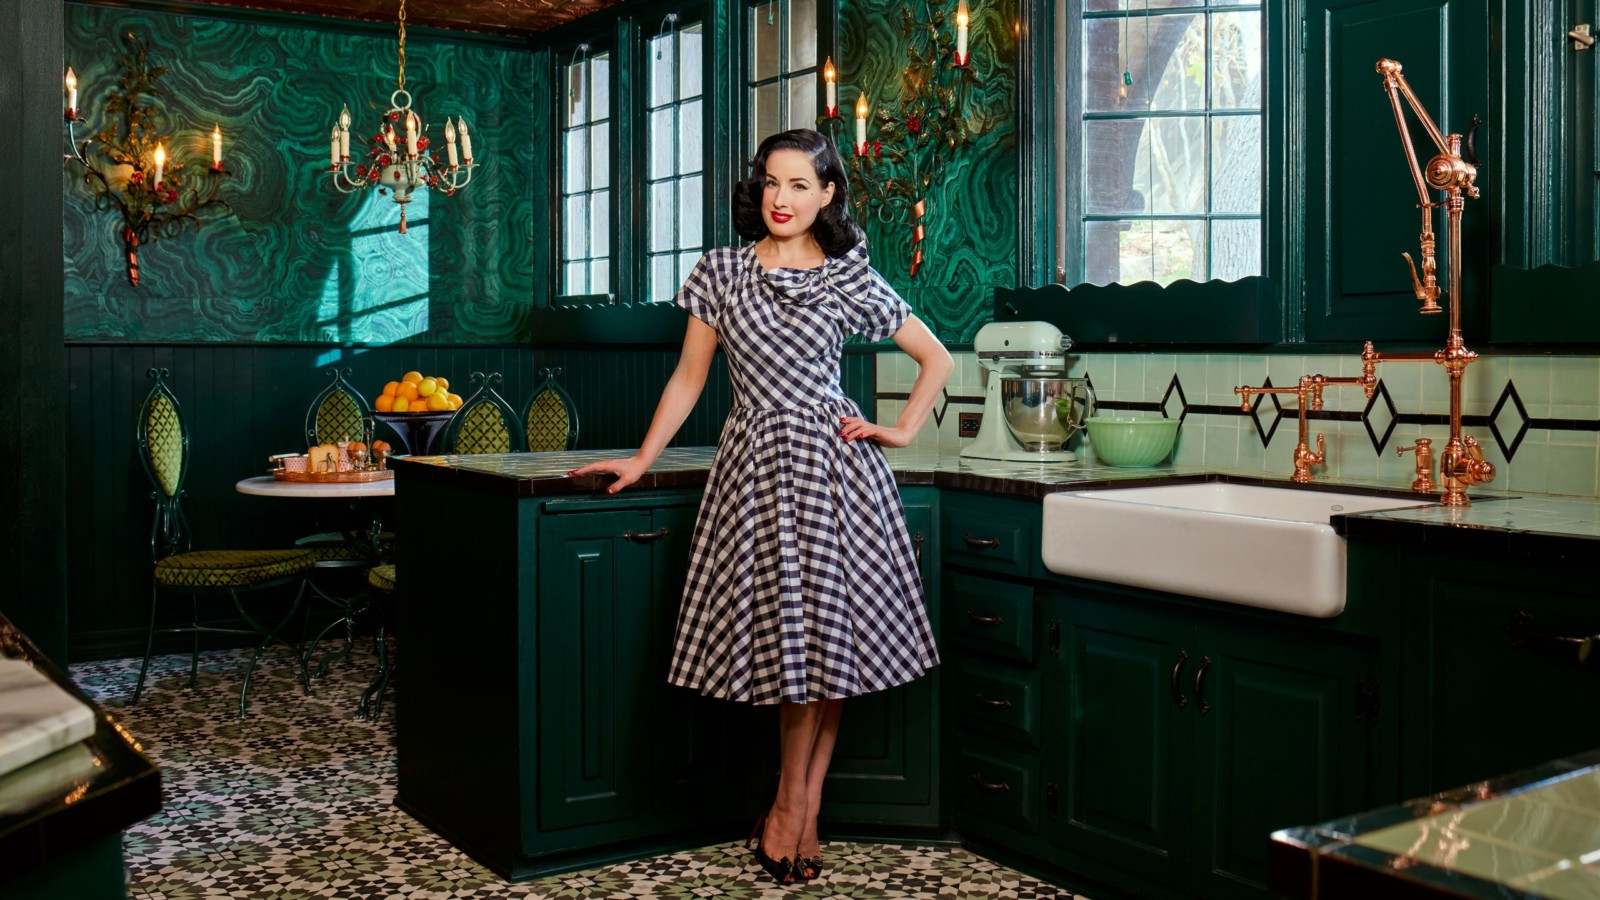 Step Inside Dita Von Teese's One-of-a-Kind L.A. Home